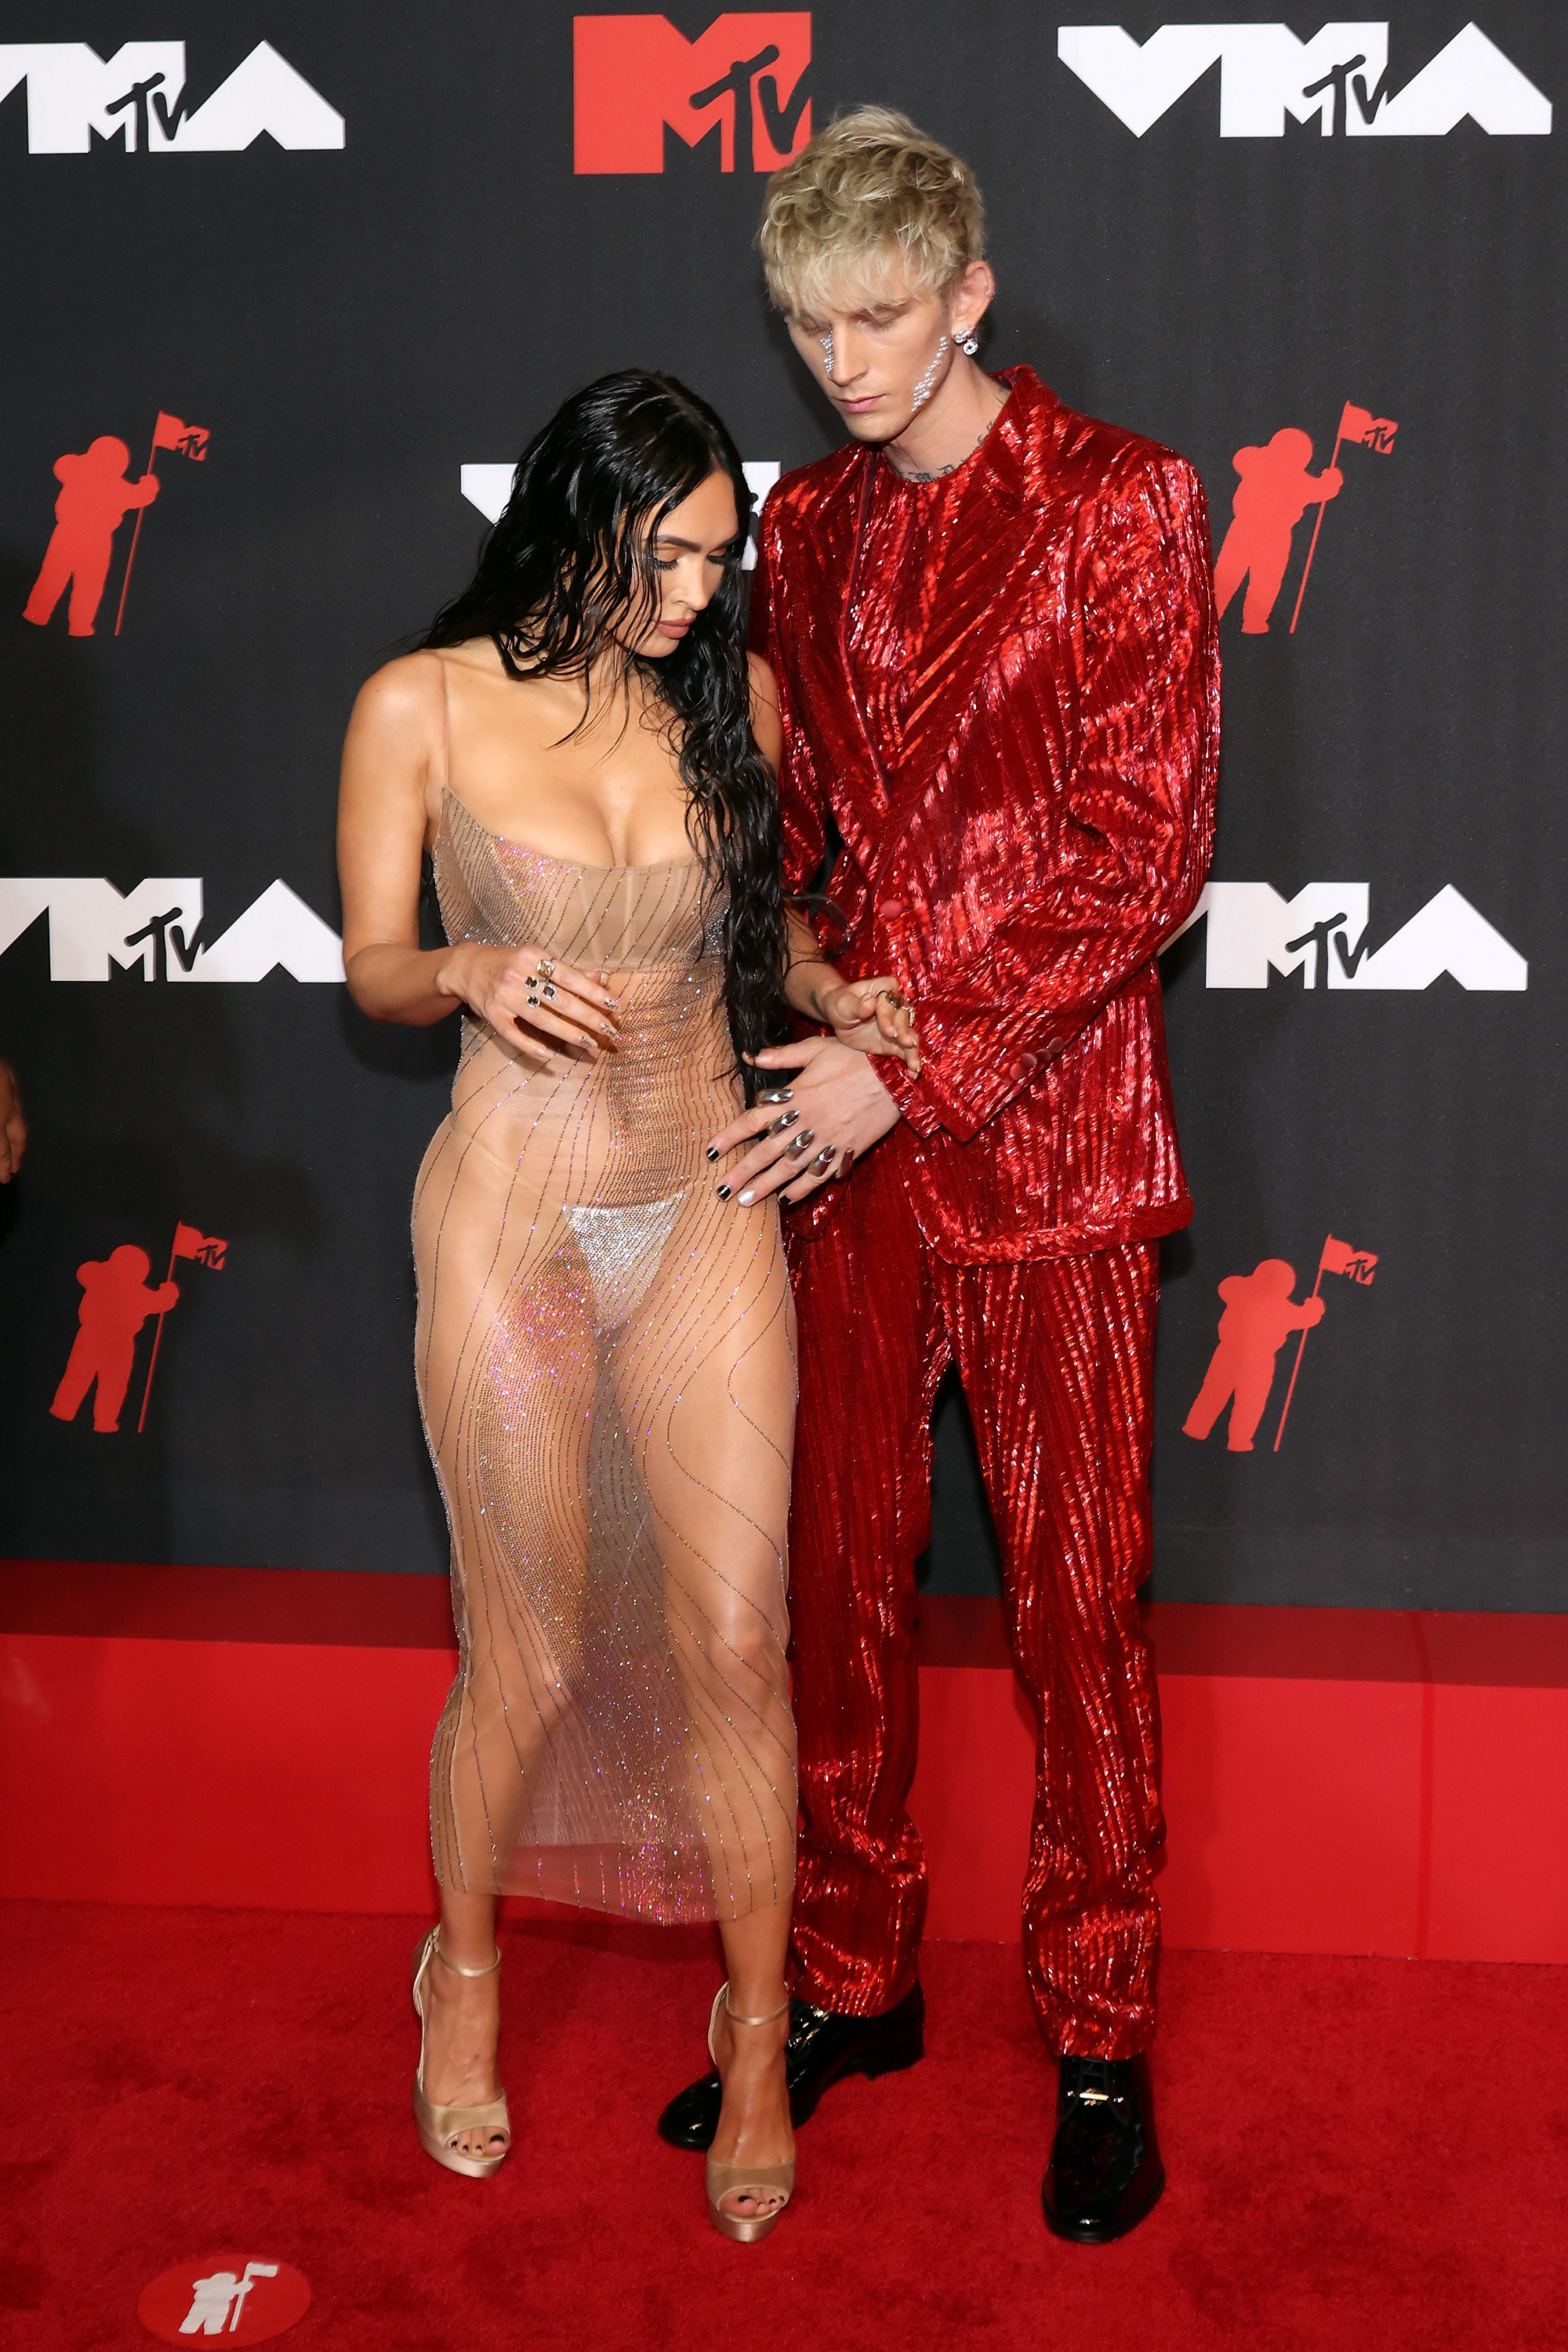 Megan Fox and Machine Gun Kelly attend the 2021 MTV Video Music Awards at Barclays Center